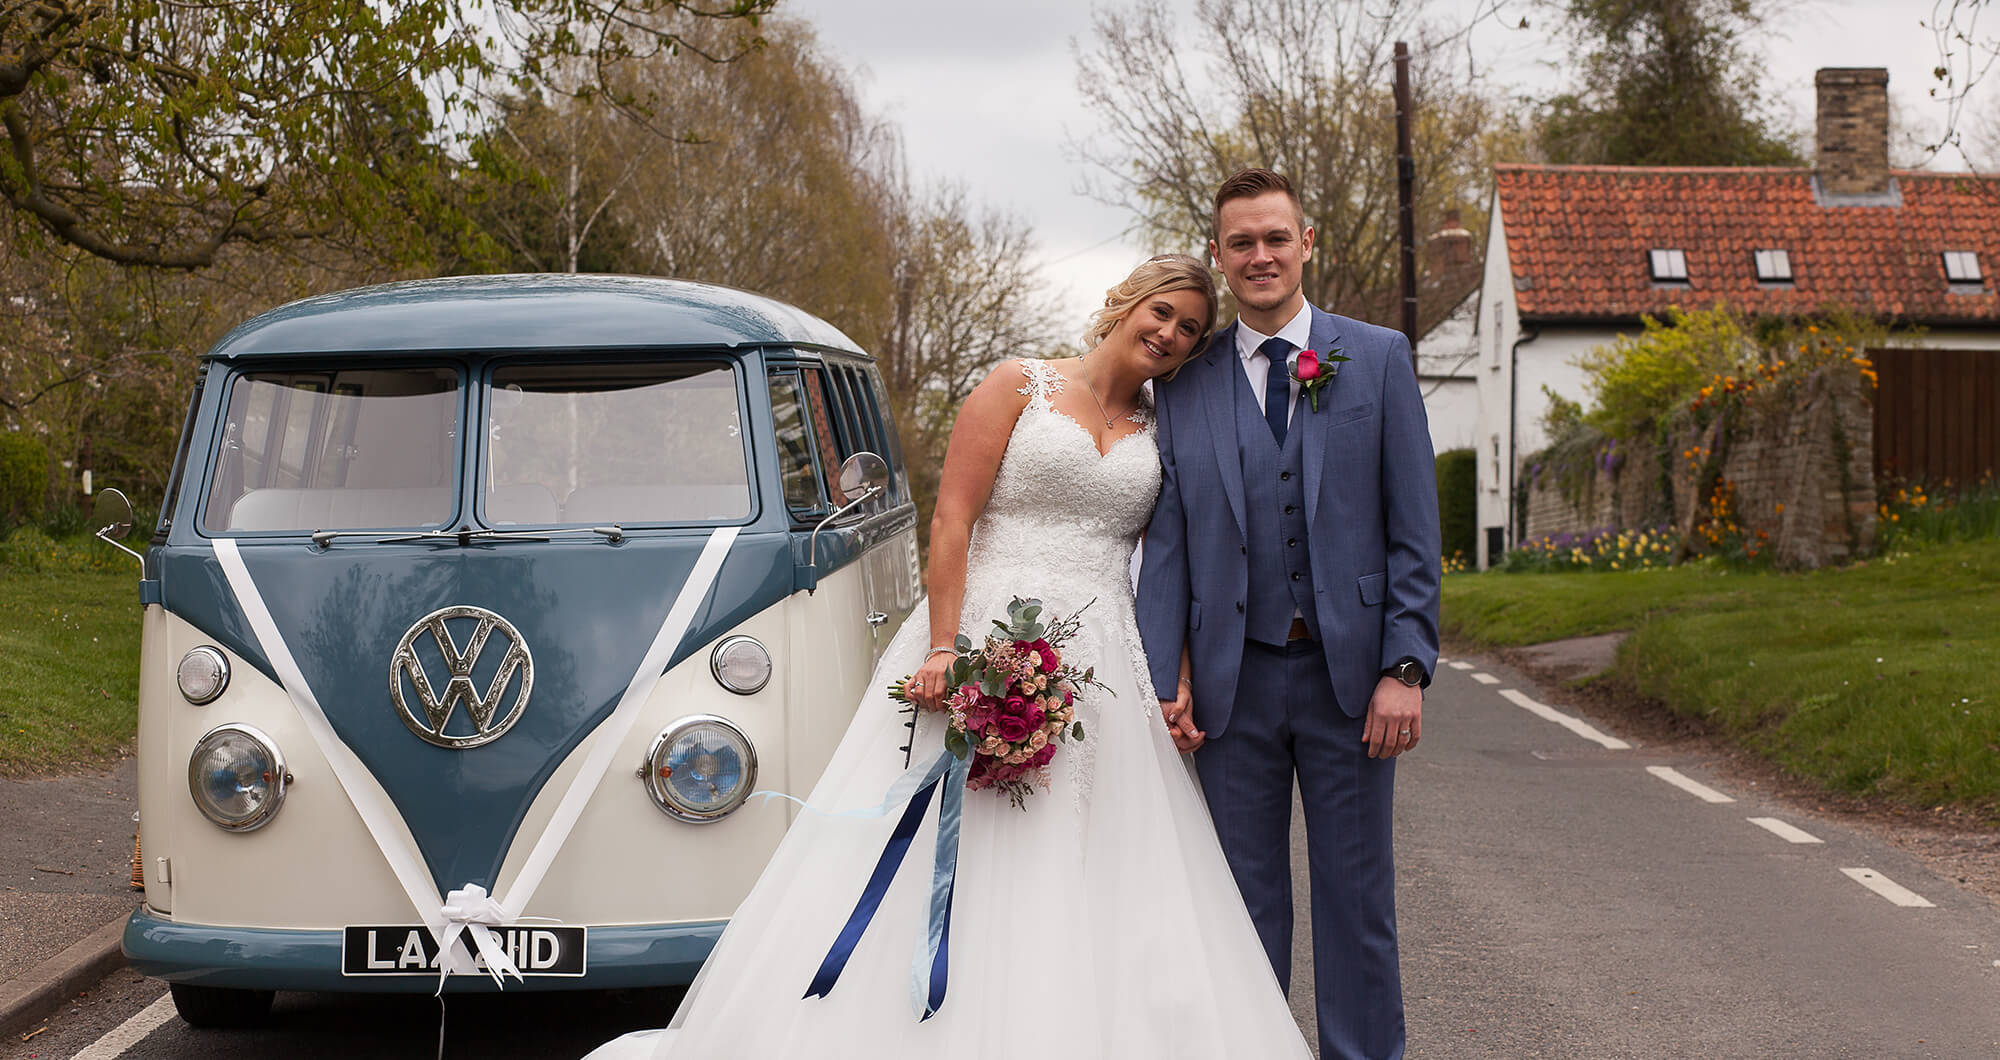 A bride and groom standing in front of a VW campervan on their wedding day